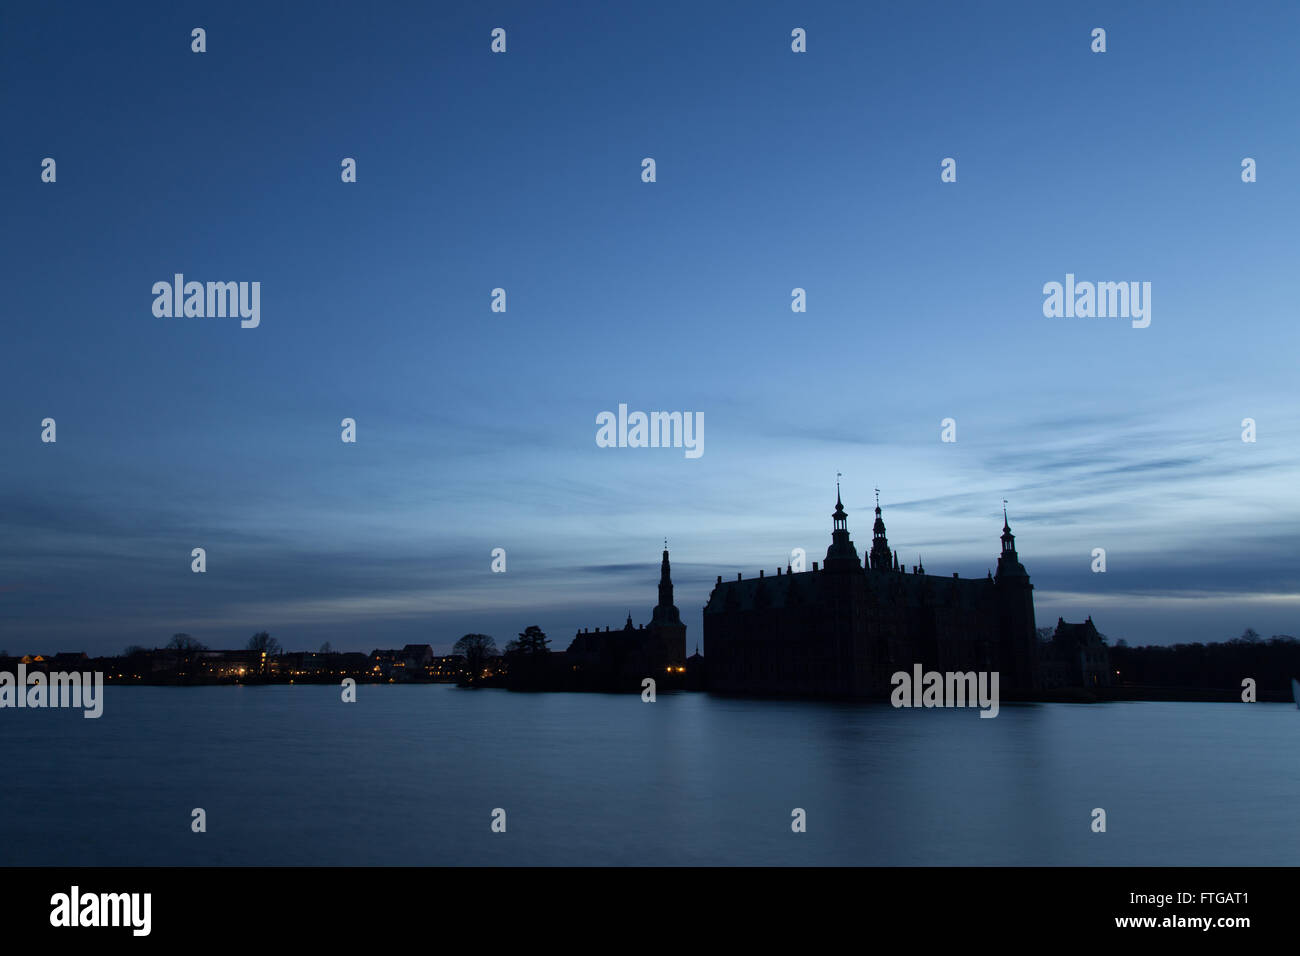 Silhouette photo of Frederiksborg Castle in Hillerod, Denmark. - Stock Image